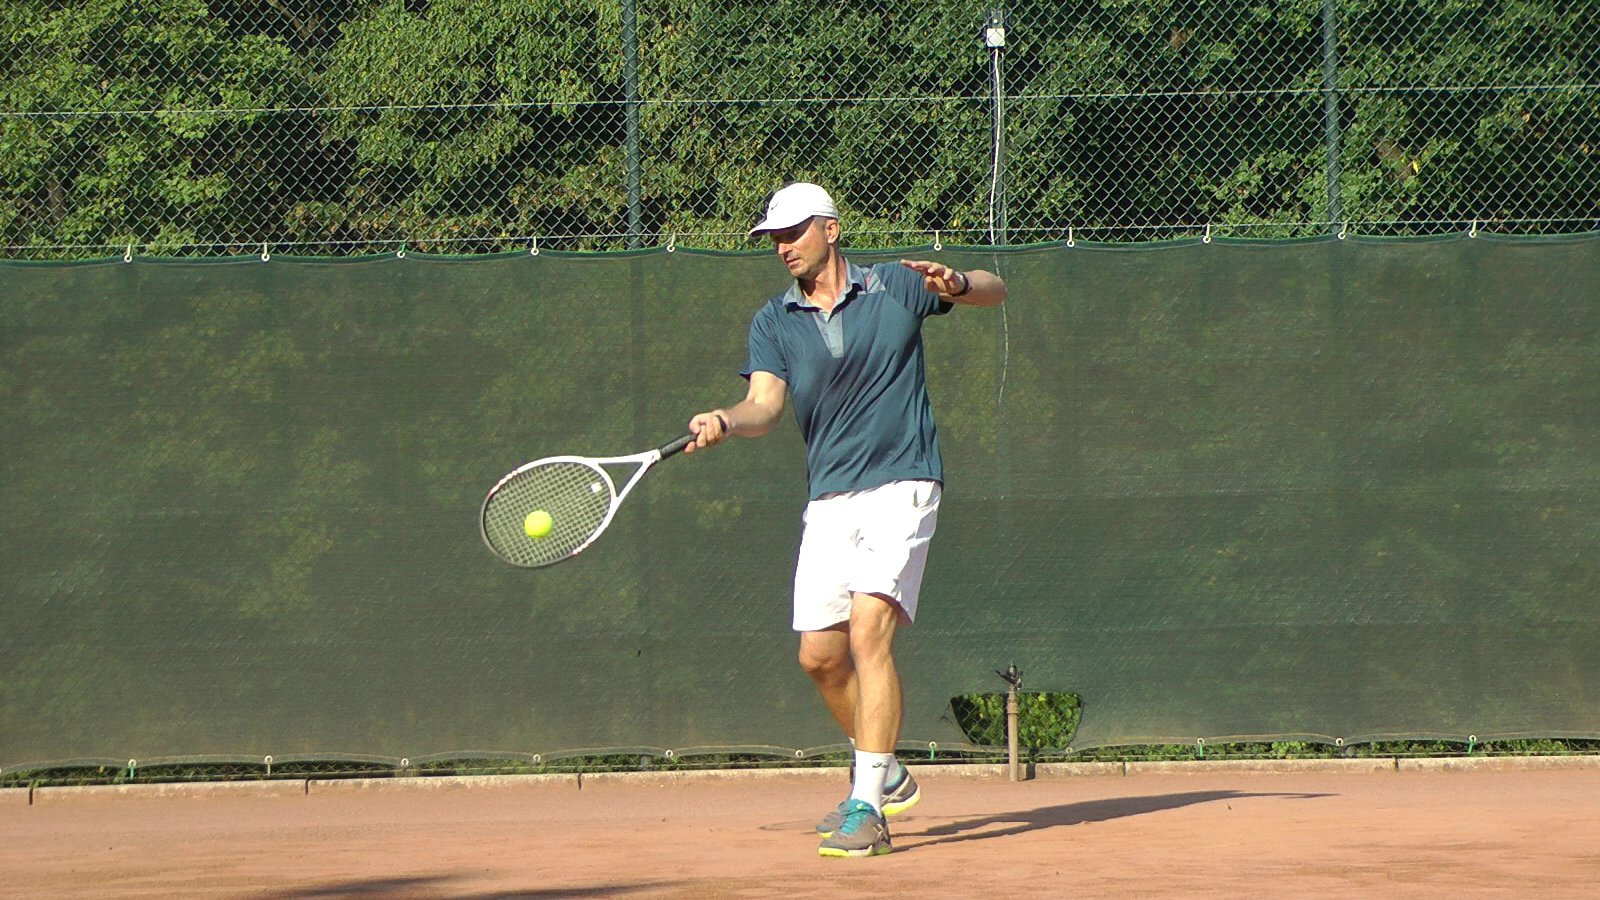 Tennis Forehand Technique 8 Steps To A Modern Forehand